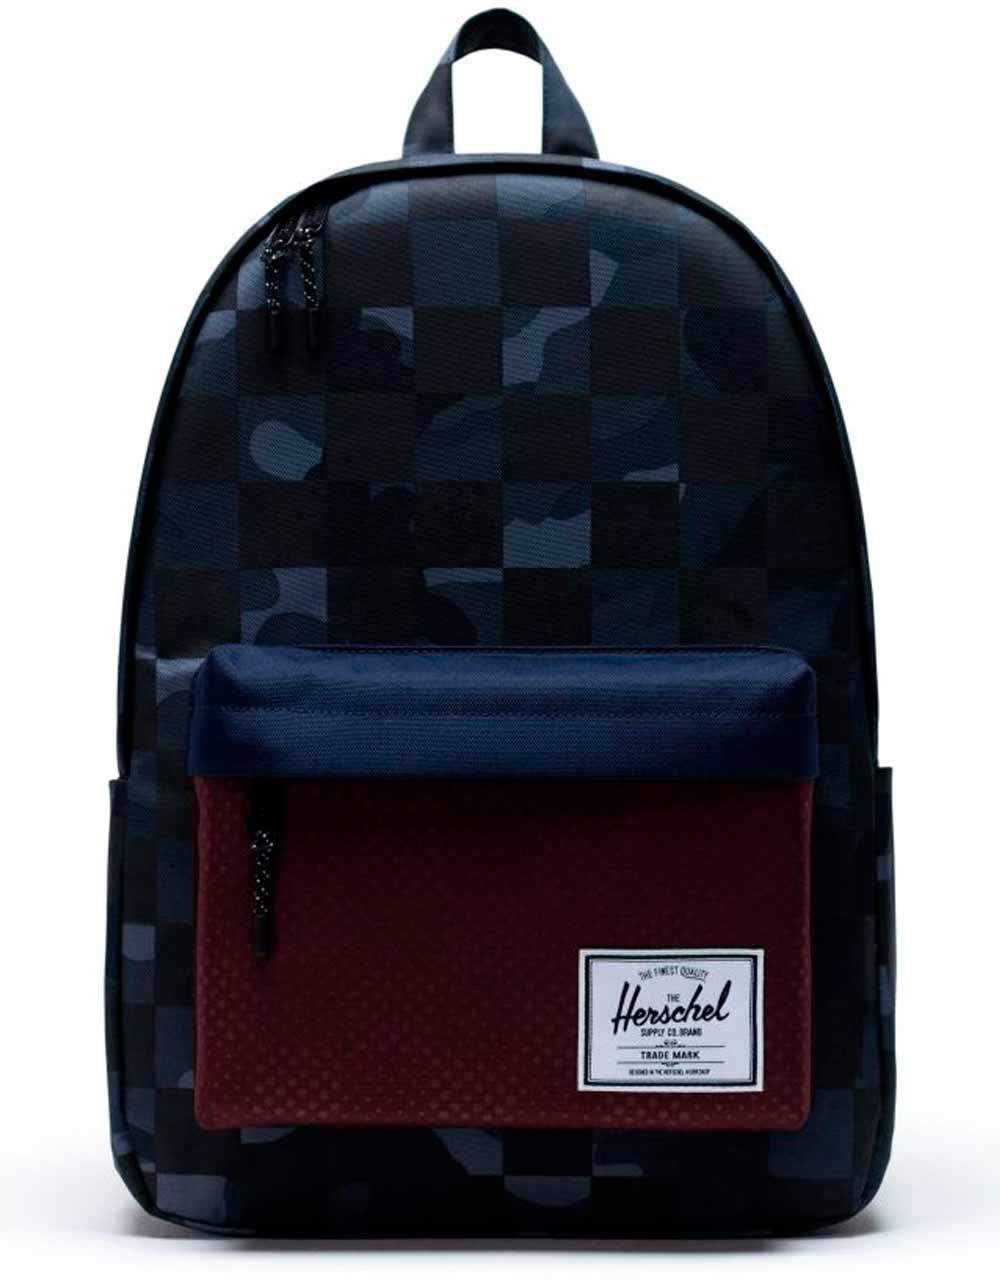 Рюкзак Herschel Classic 24l, Night Camo/Plum Dot Check/Checker